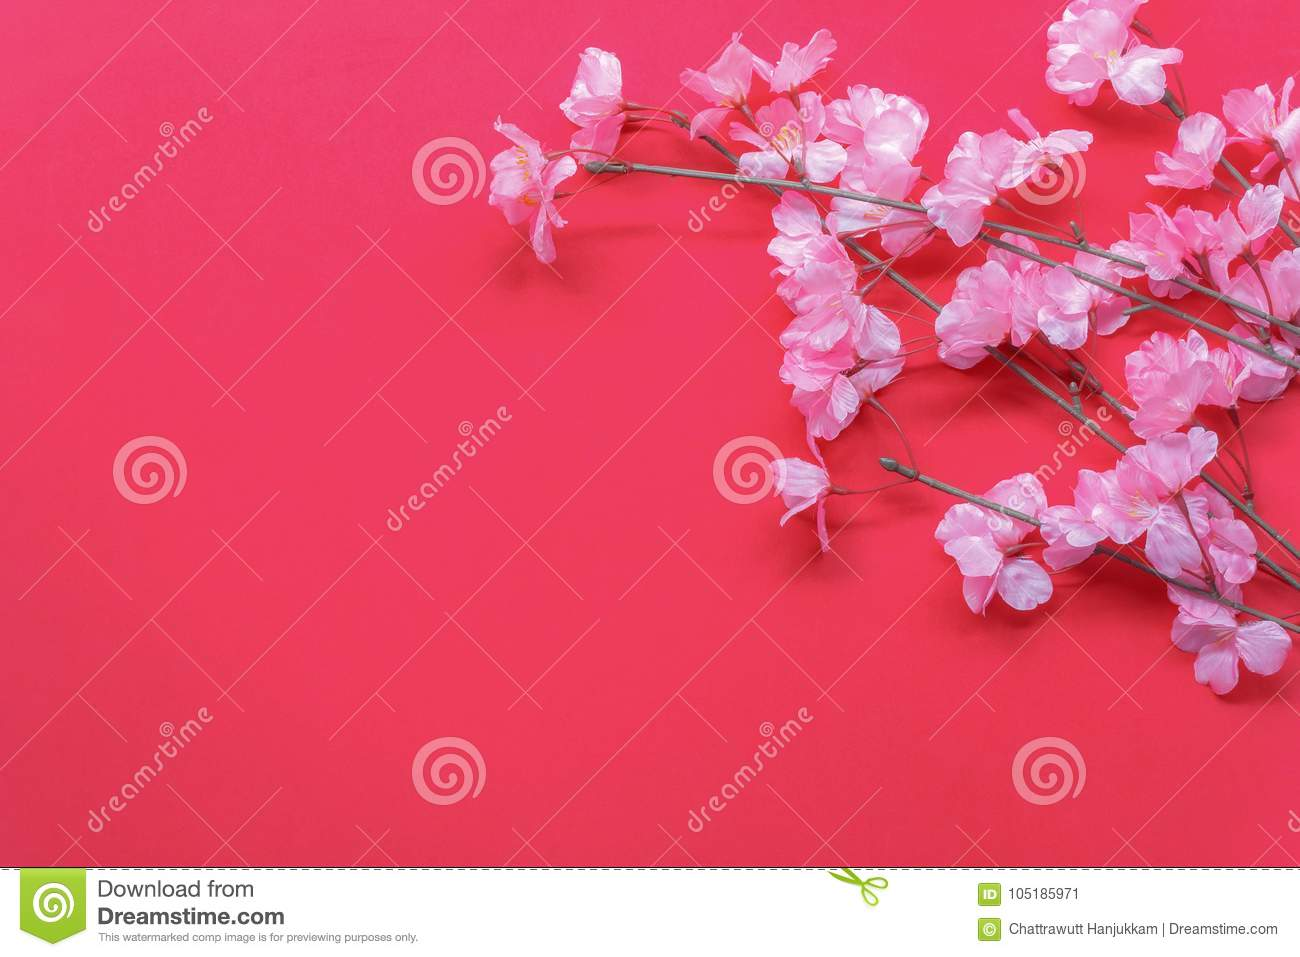 Download Arrangement Decoration Chinese New Year Lunar Festival Concept Background Stock Image